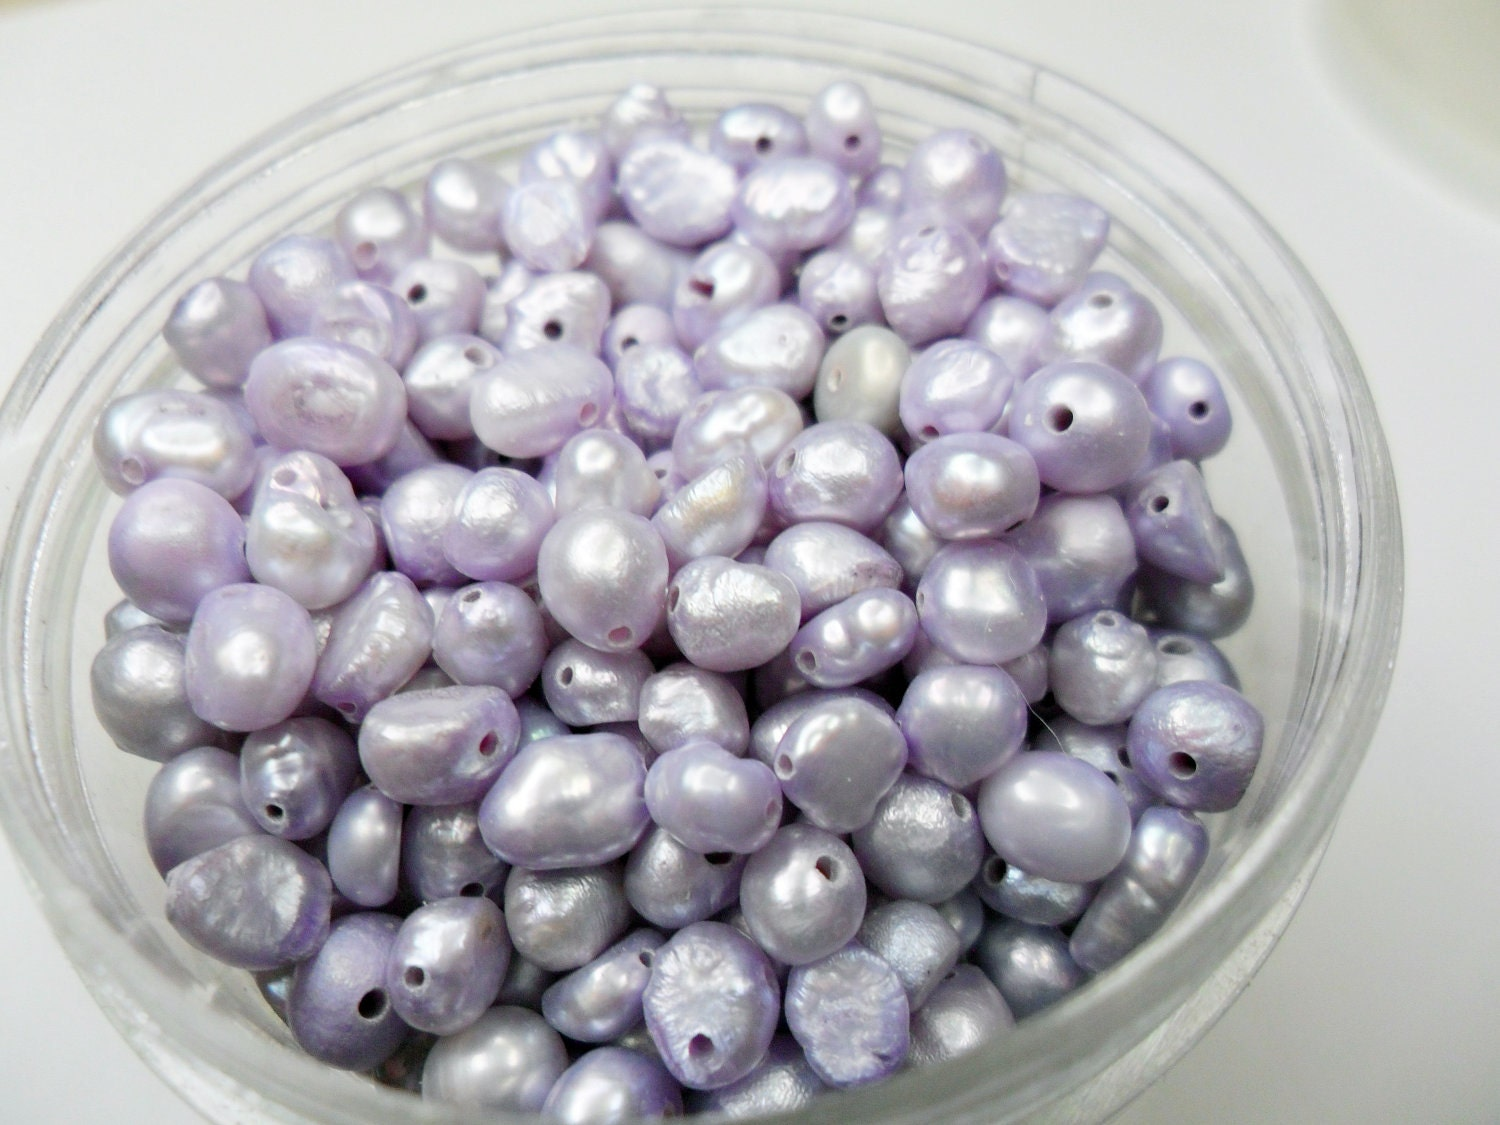 Pearls, Lavender Freshwater Pearl beads, 4-5mm, Side drilled,   45pcs - BeaconBeads